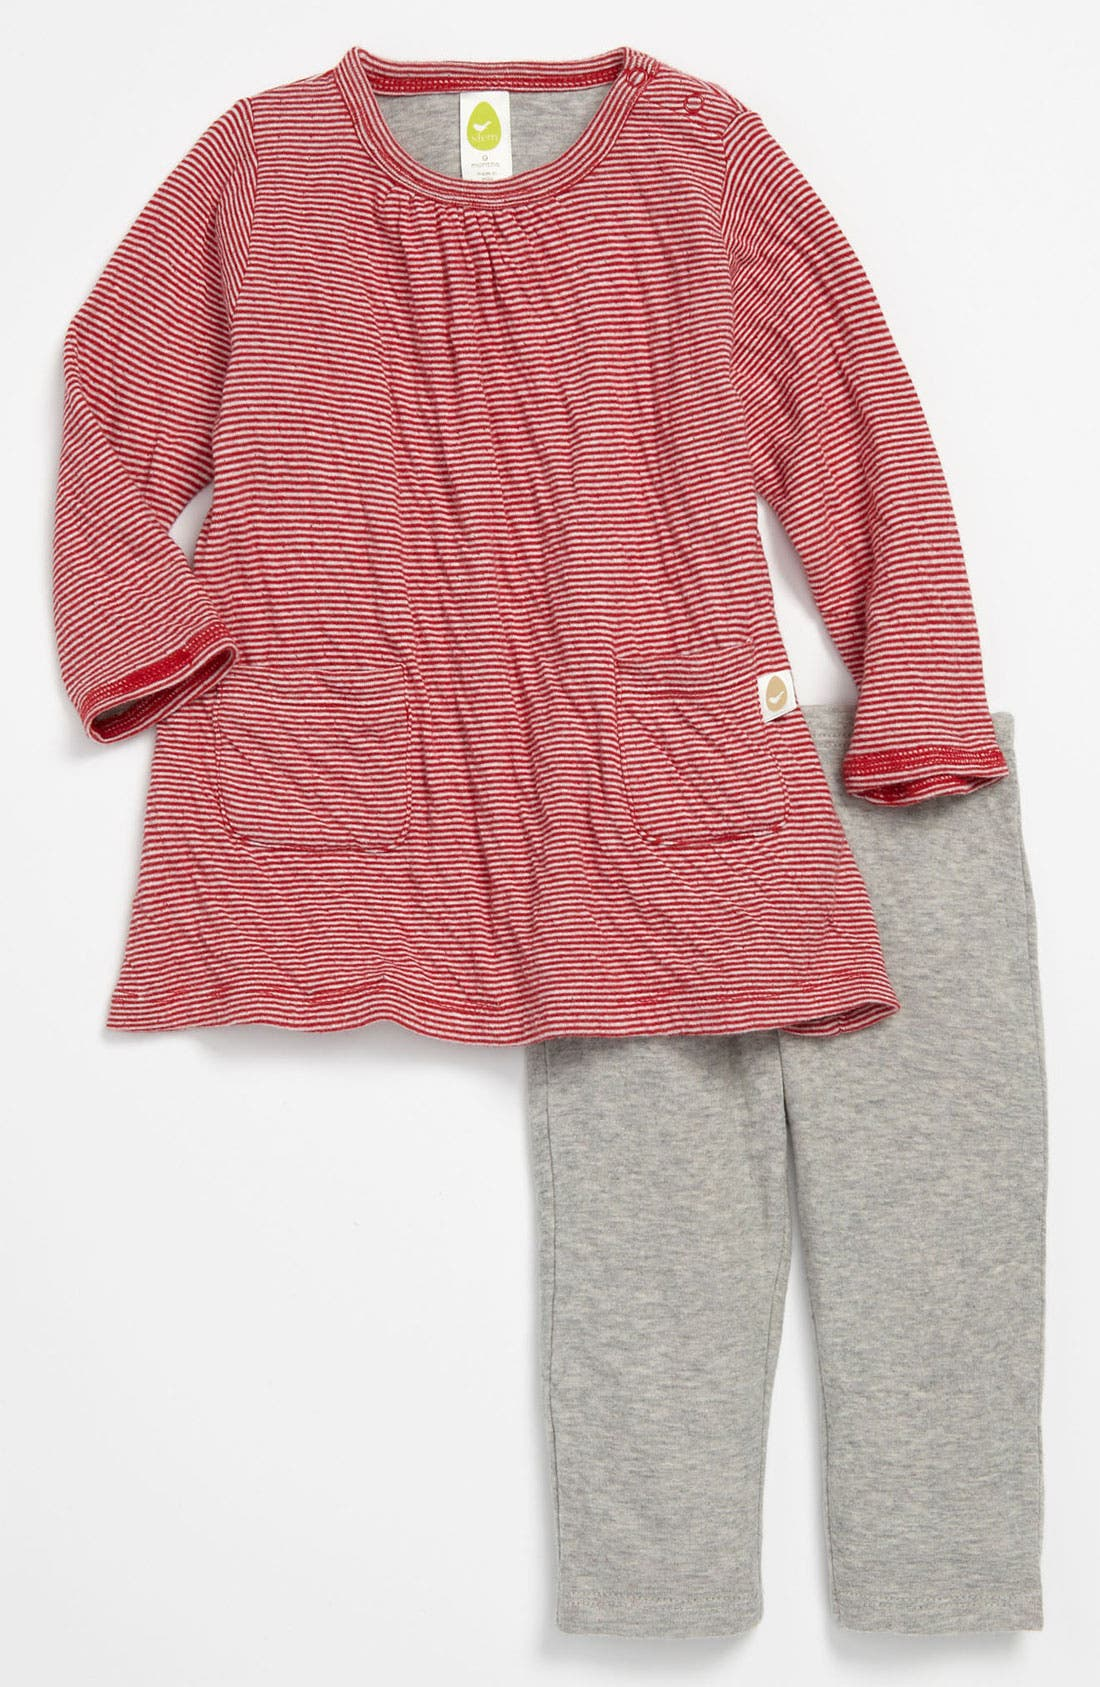 Alternate Image 1 Selected - Stem Baby Double Knit Organic Cotton Dress & Leggings (Infant)